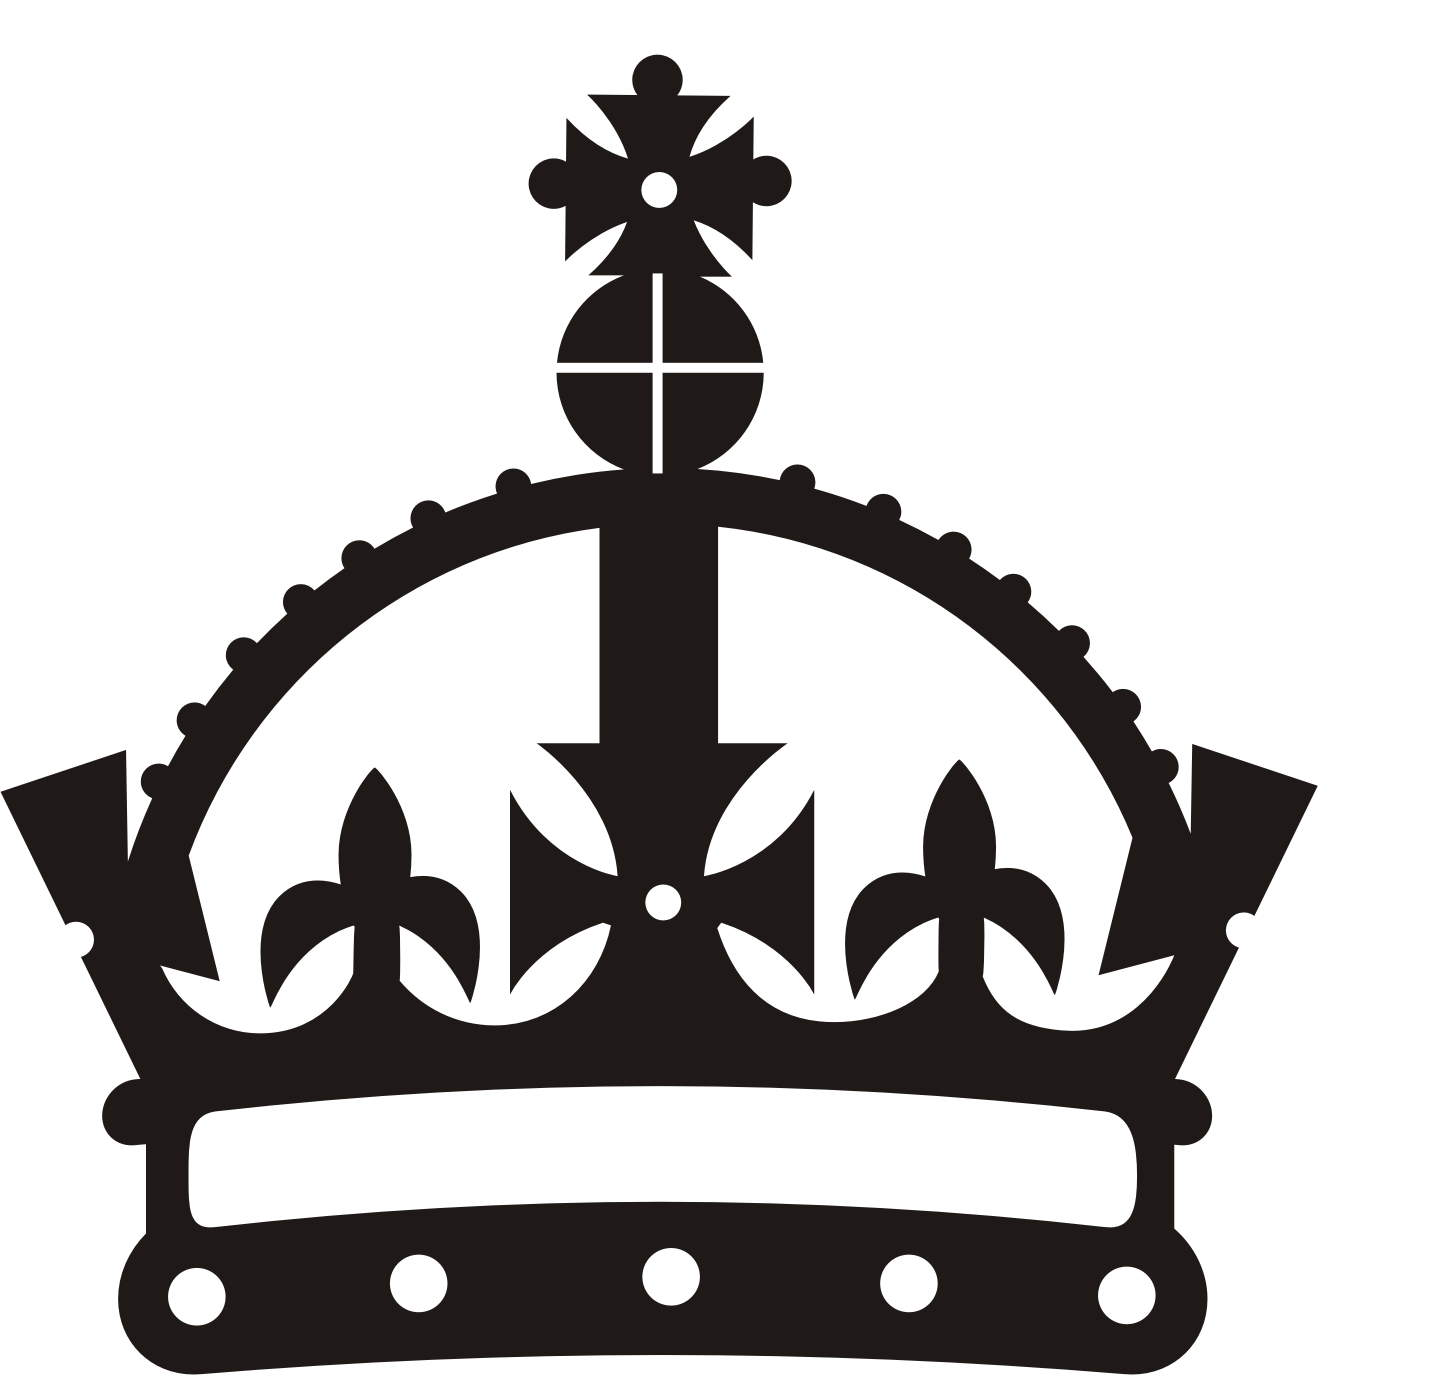 Crowns Clipart Best Crown Illustration Crown Silhouette Crown Images